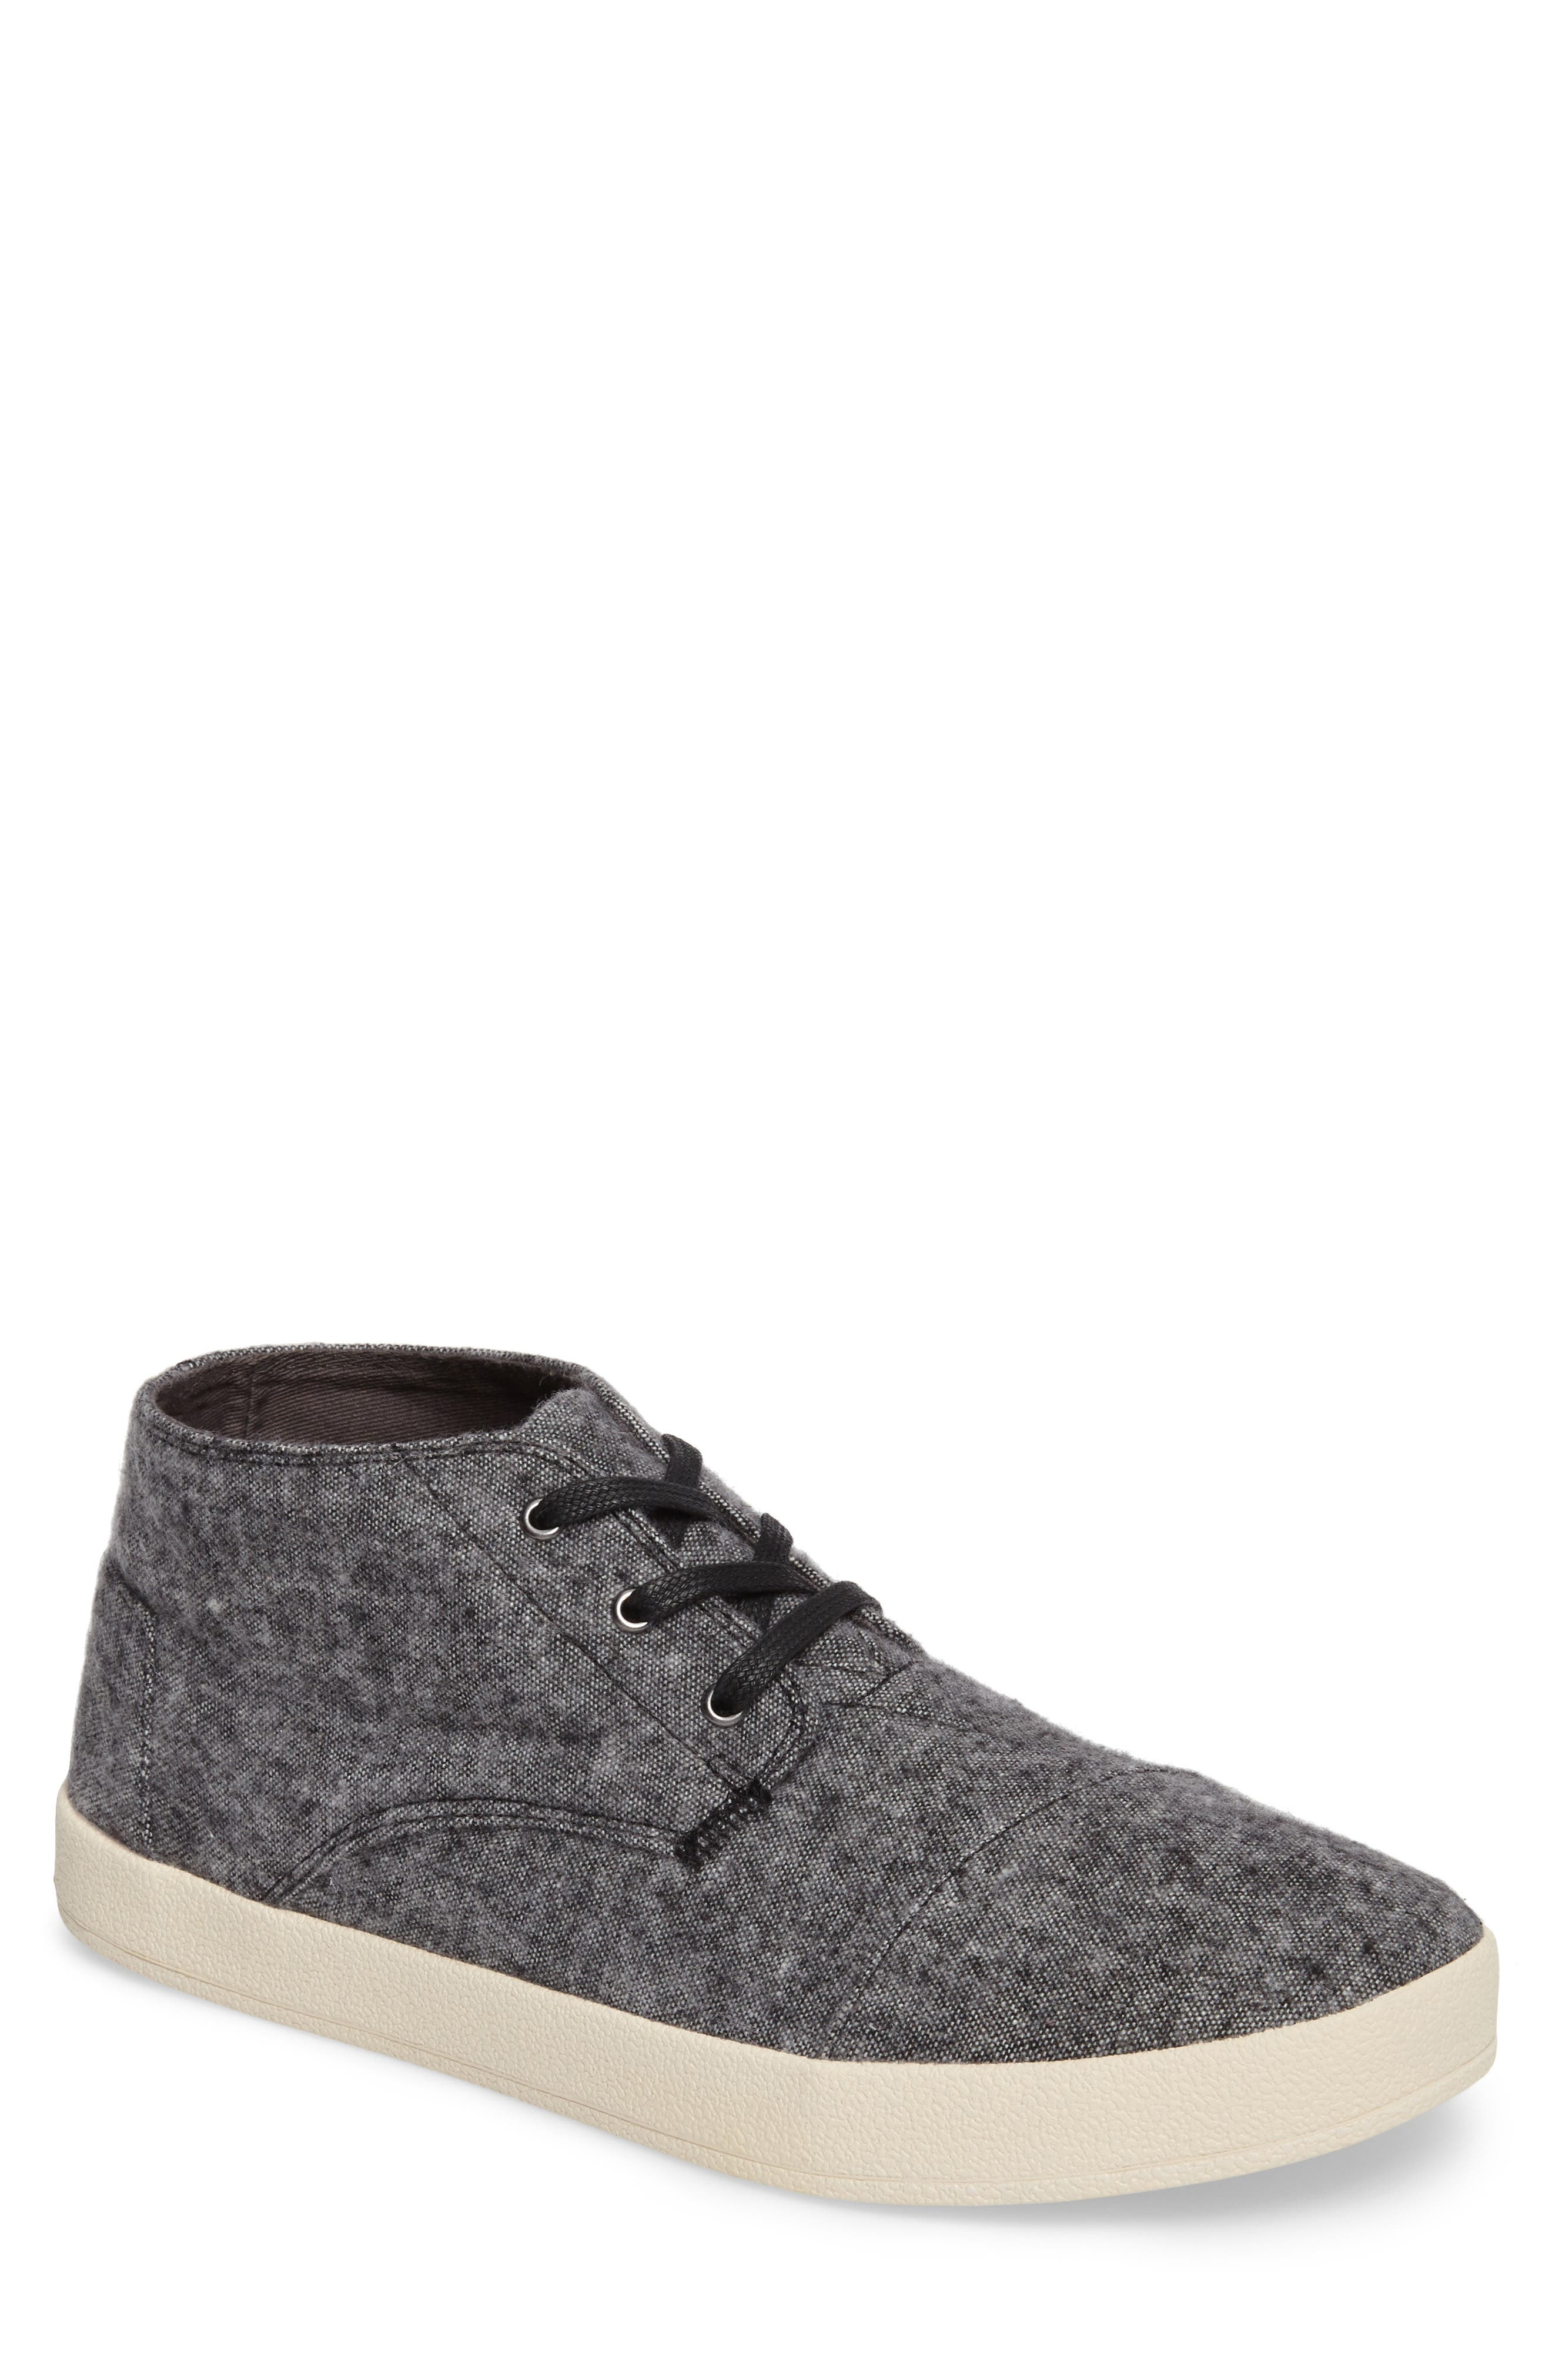 Alternate Image 1 Selected - TOMS 'Paseo Mid' Sneaker (Men)